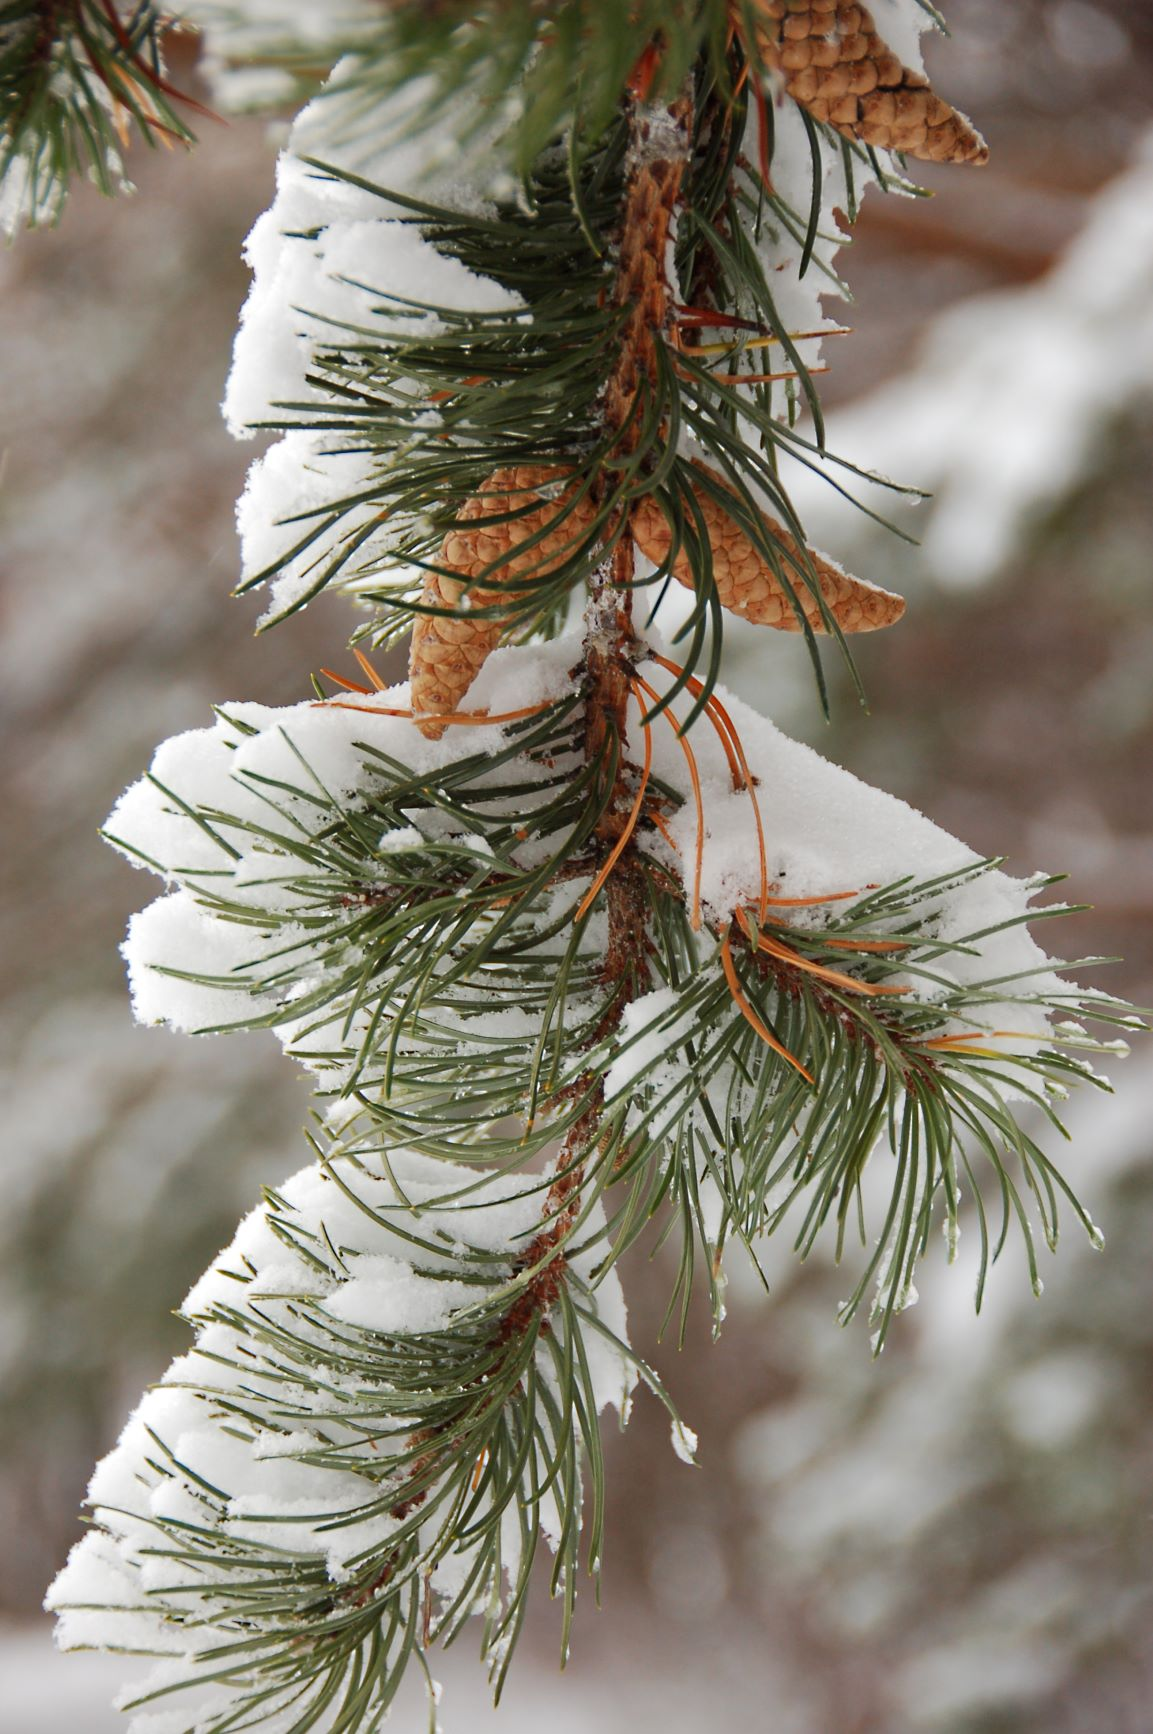 How conifers cope with Winter's cold